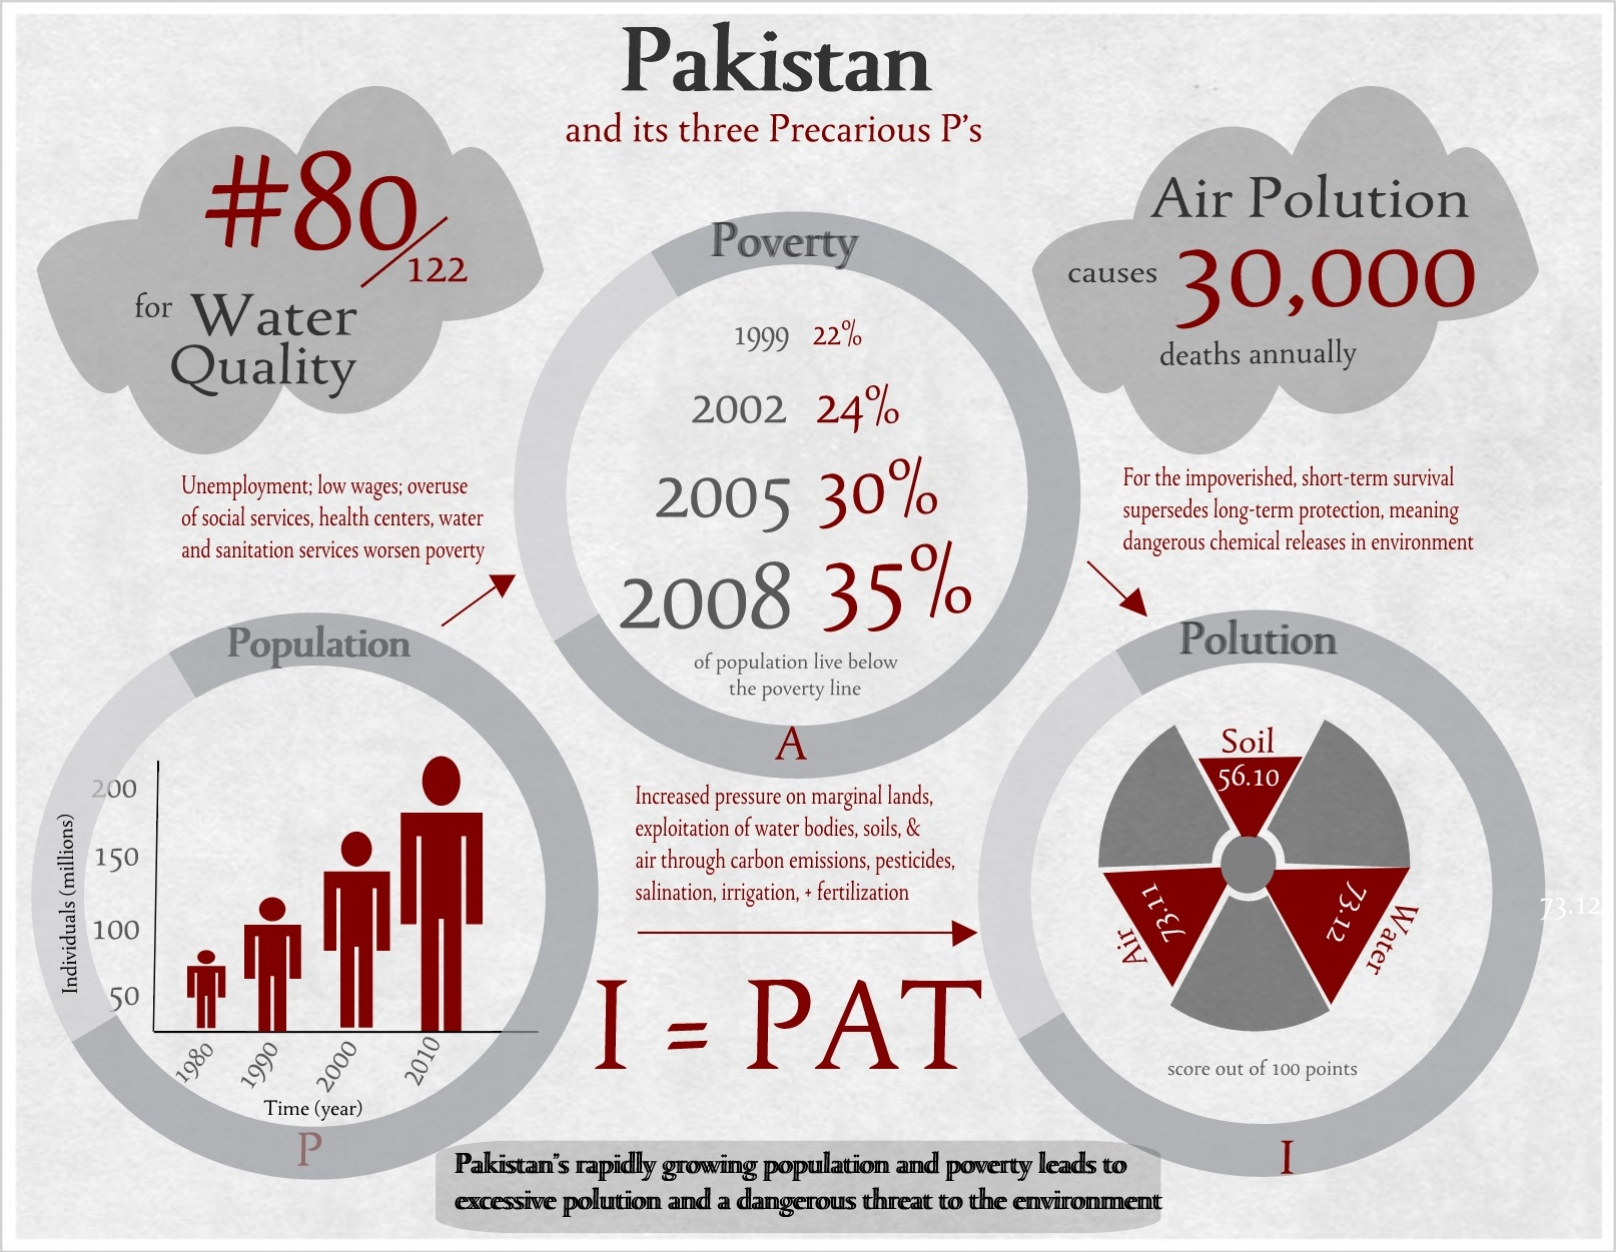 219758pakistanimage create amazing infographics easel of social services health centers water 2005 3 00 0 and sanitation services worsen poverty r 2008 35 stopboris Images